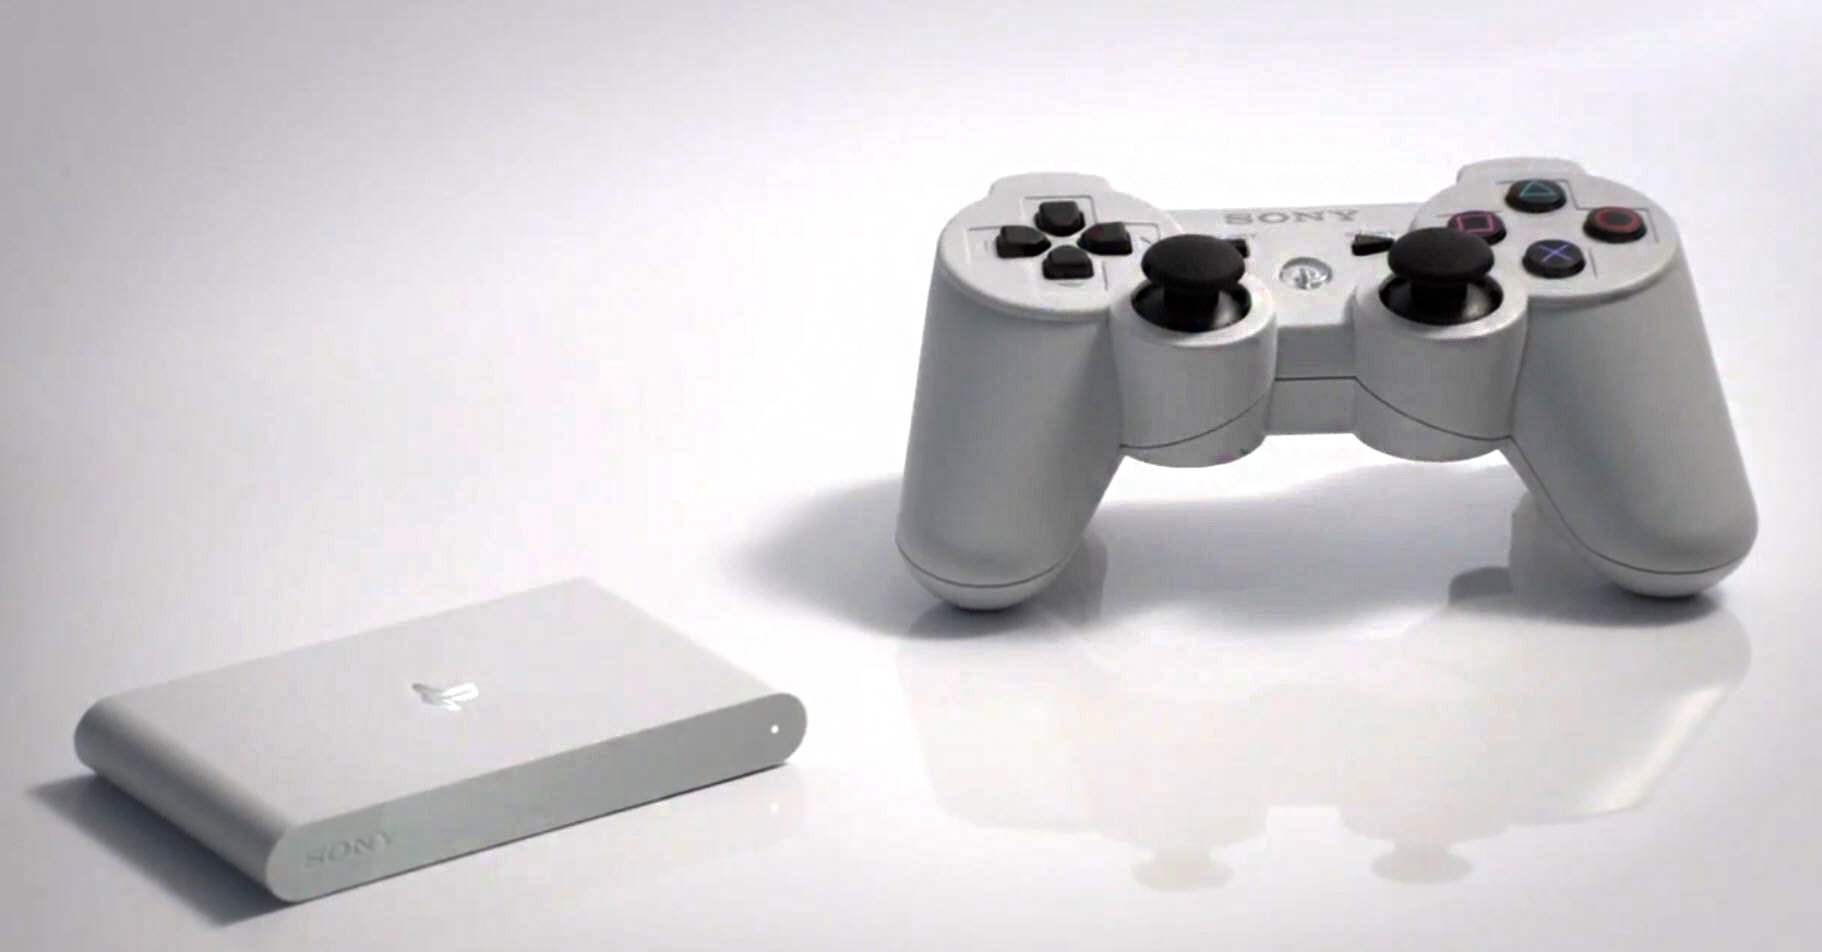 Sony Ps Vita Game Cartridge : Sony announces game changing playstation vita tv